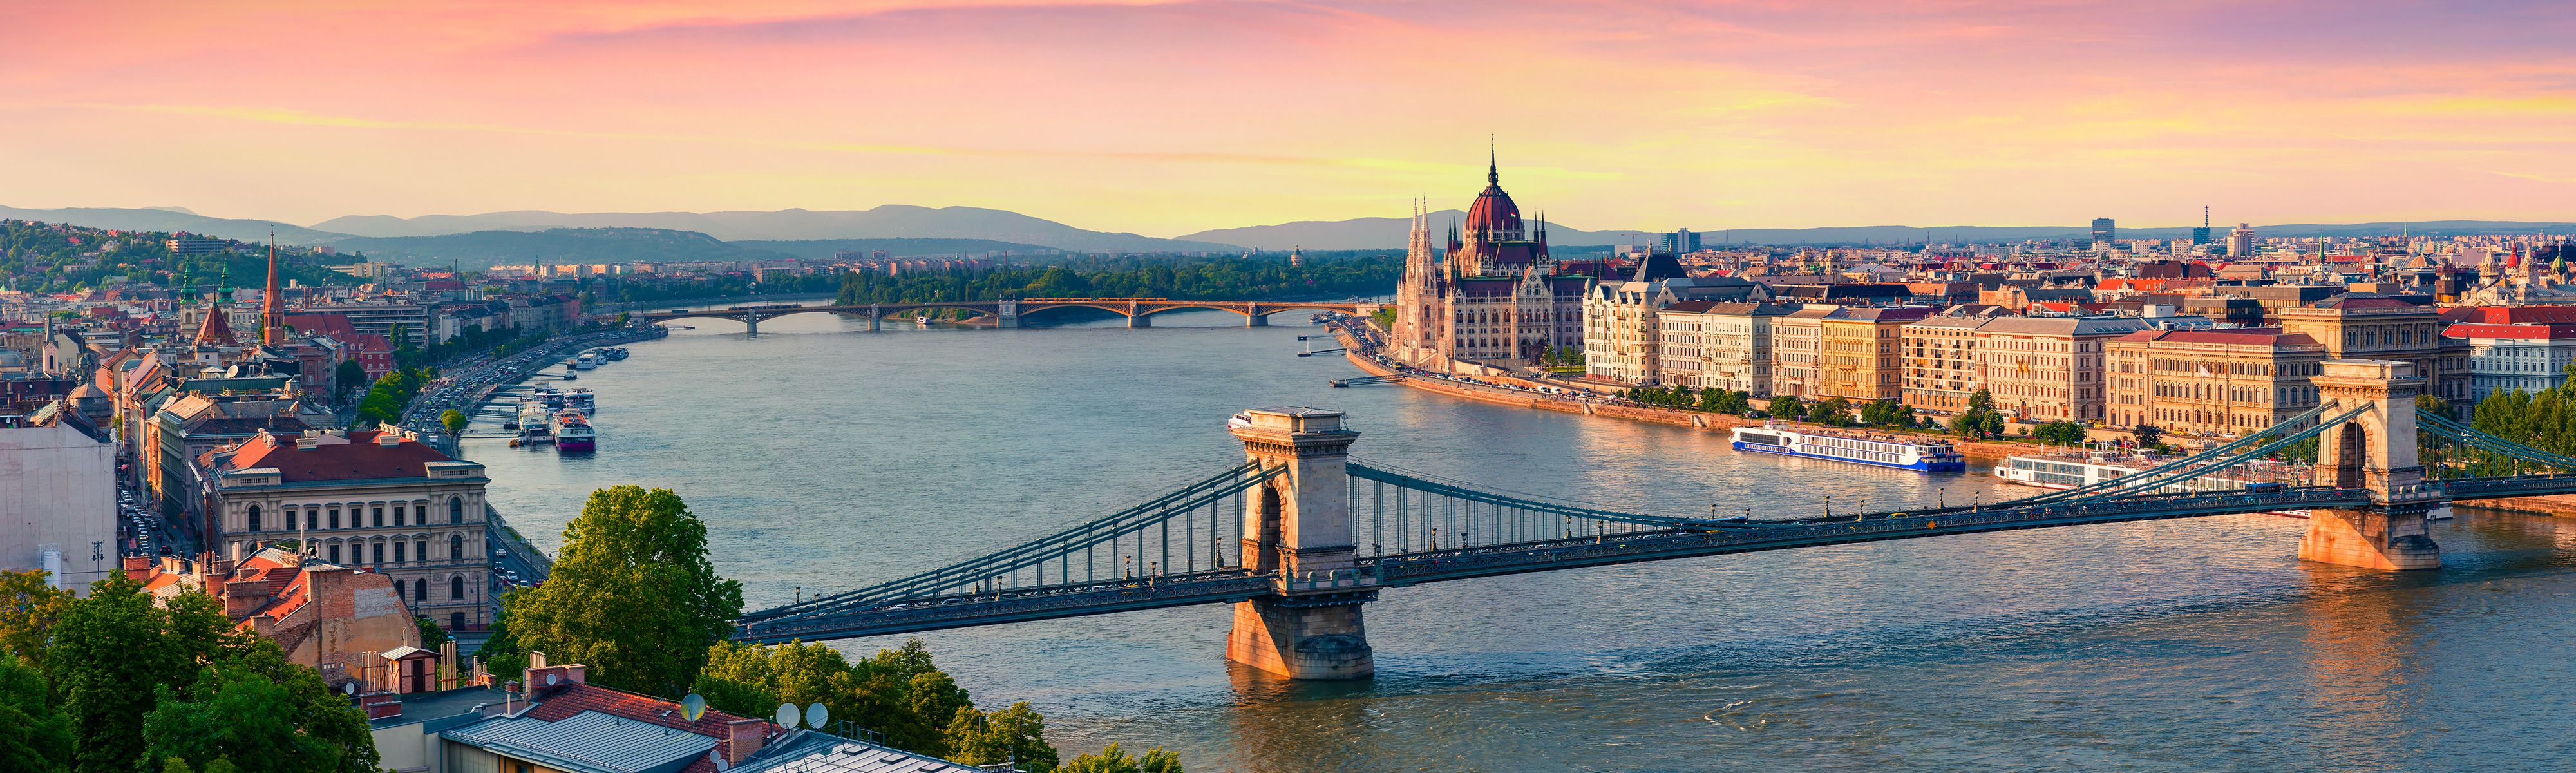 bridge across river with view of the parliament building in budapest at sunset